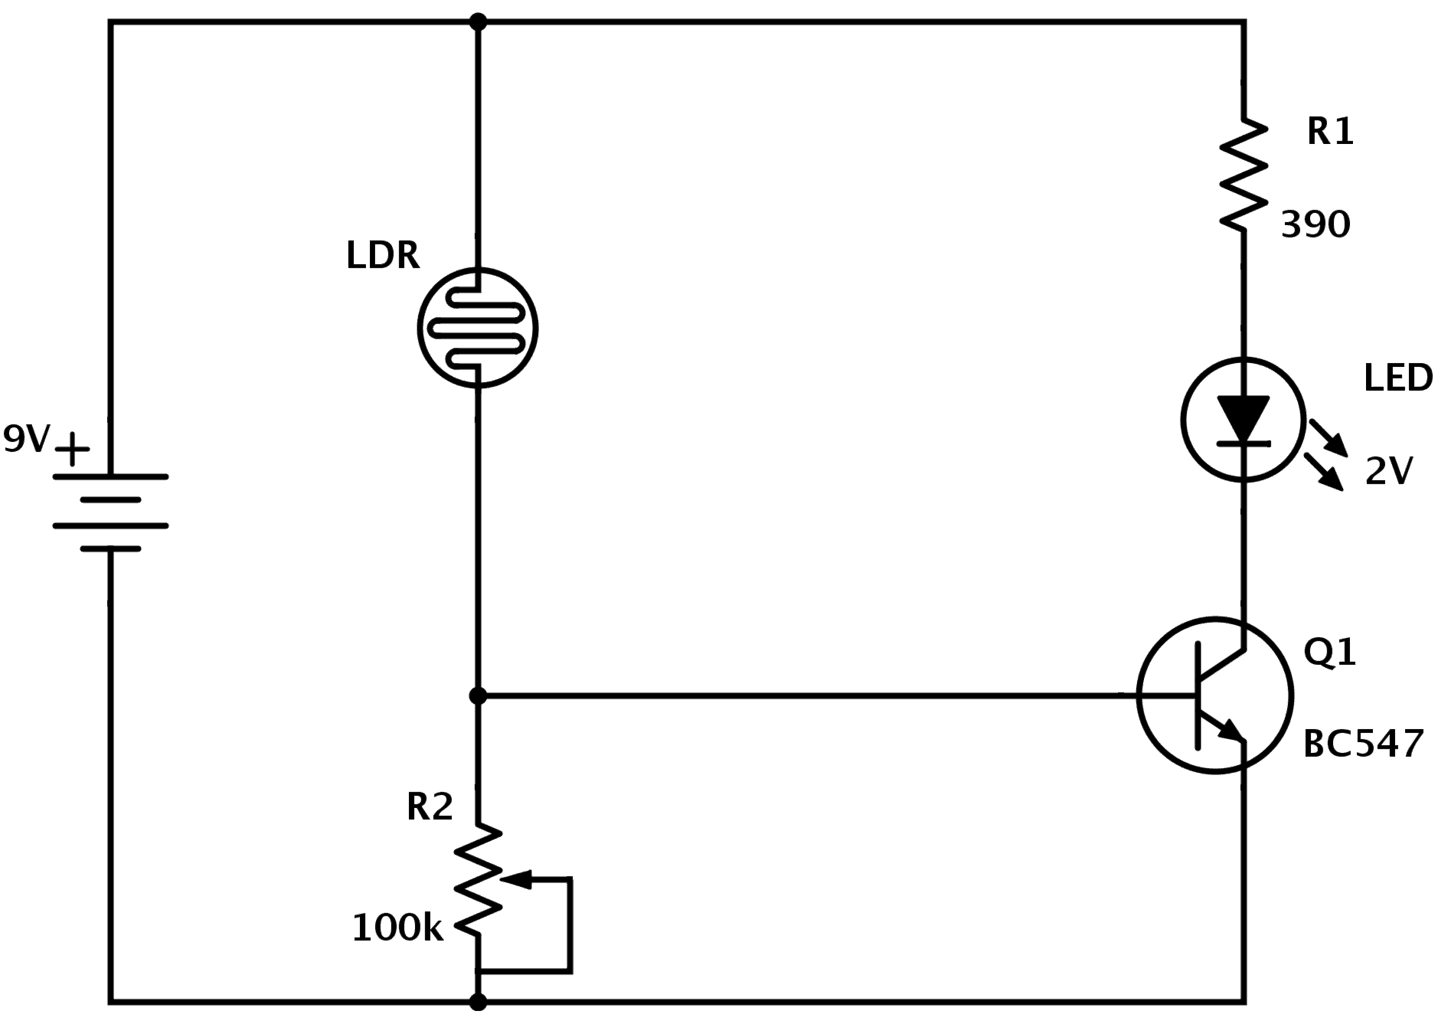 circuit diagram how to read and understand any schematic rh build electronic circuits com Diagram Electrical Circuit Series Circuit Diagram